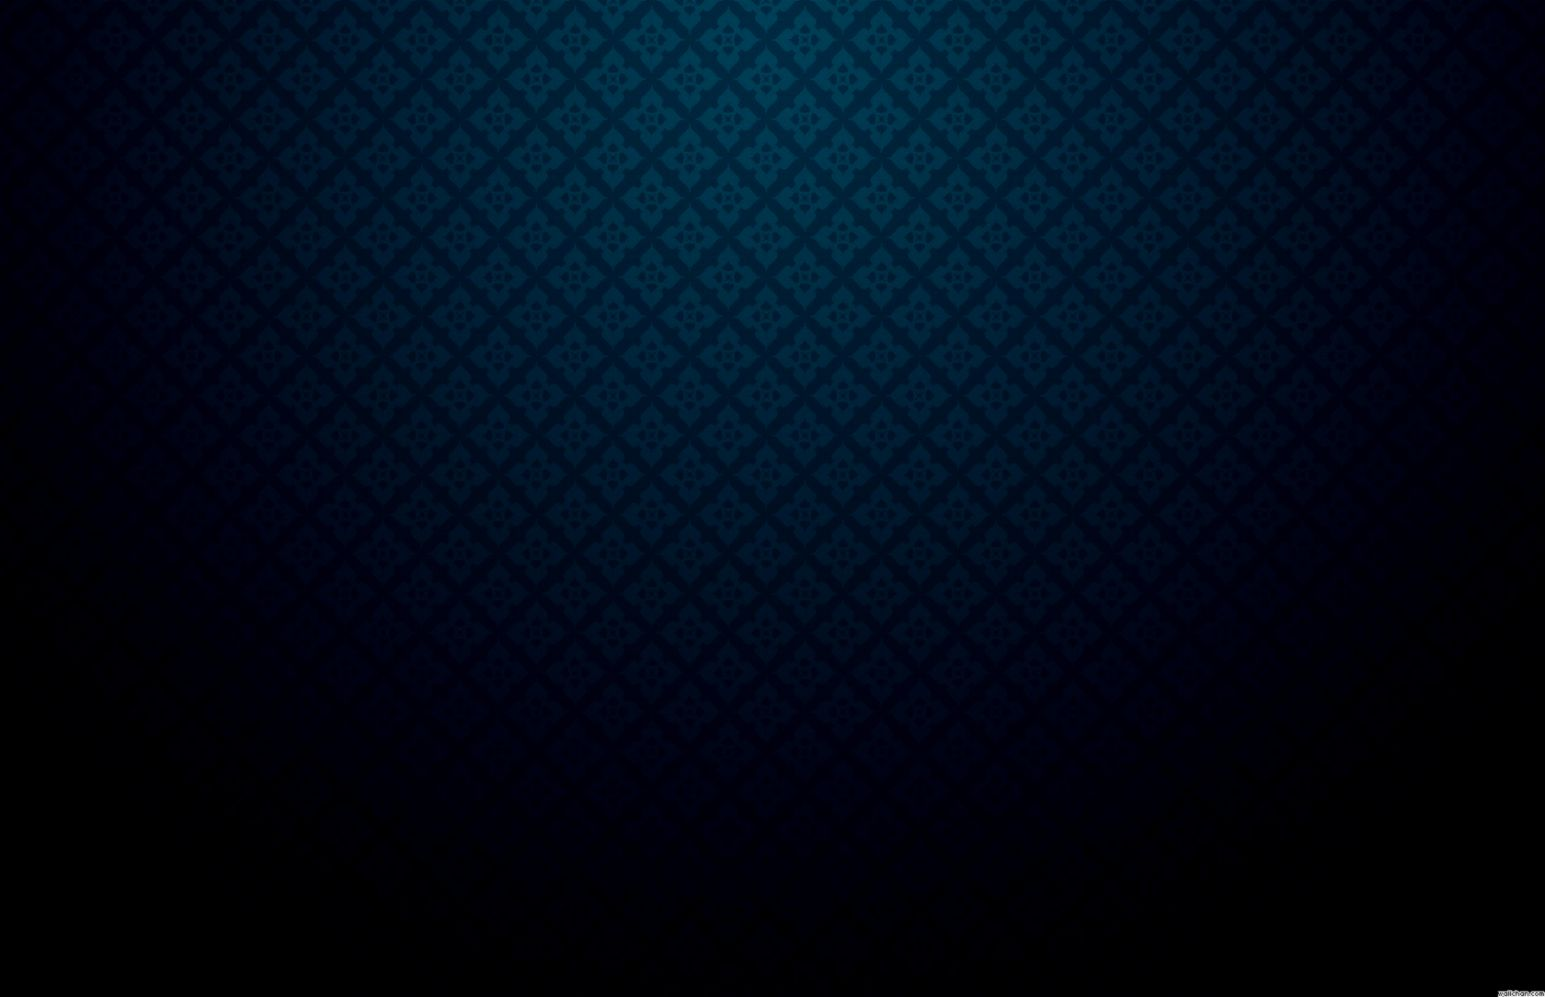 Dark Blue Vintage Wallpaper Background | Best HD Wallpapers